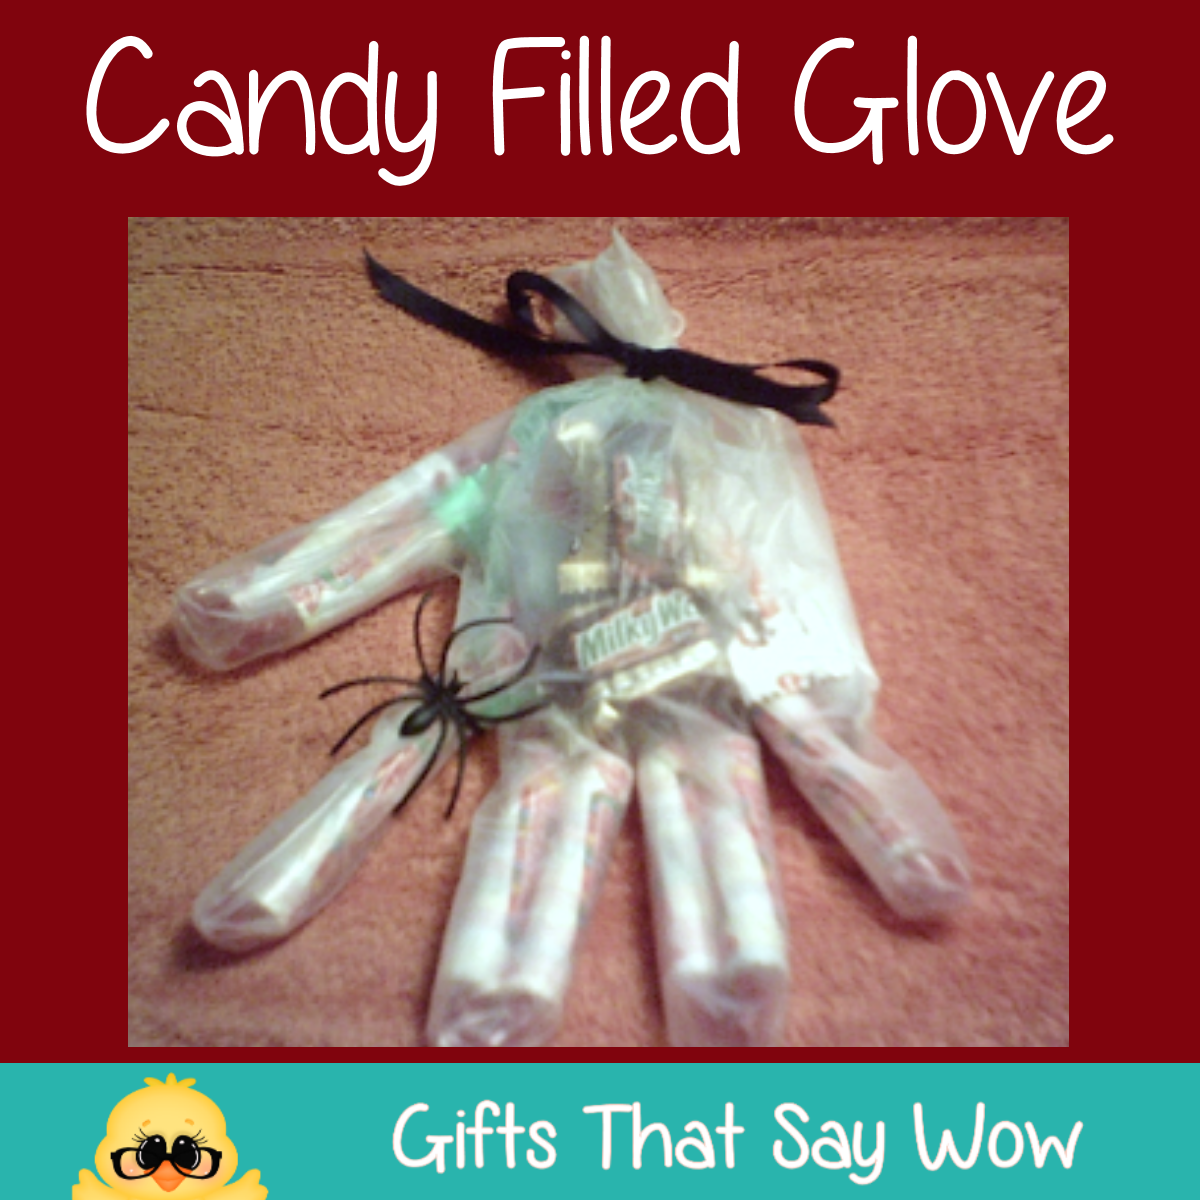 gifts that say wow fun crafts and gift ideas halloween crafts